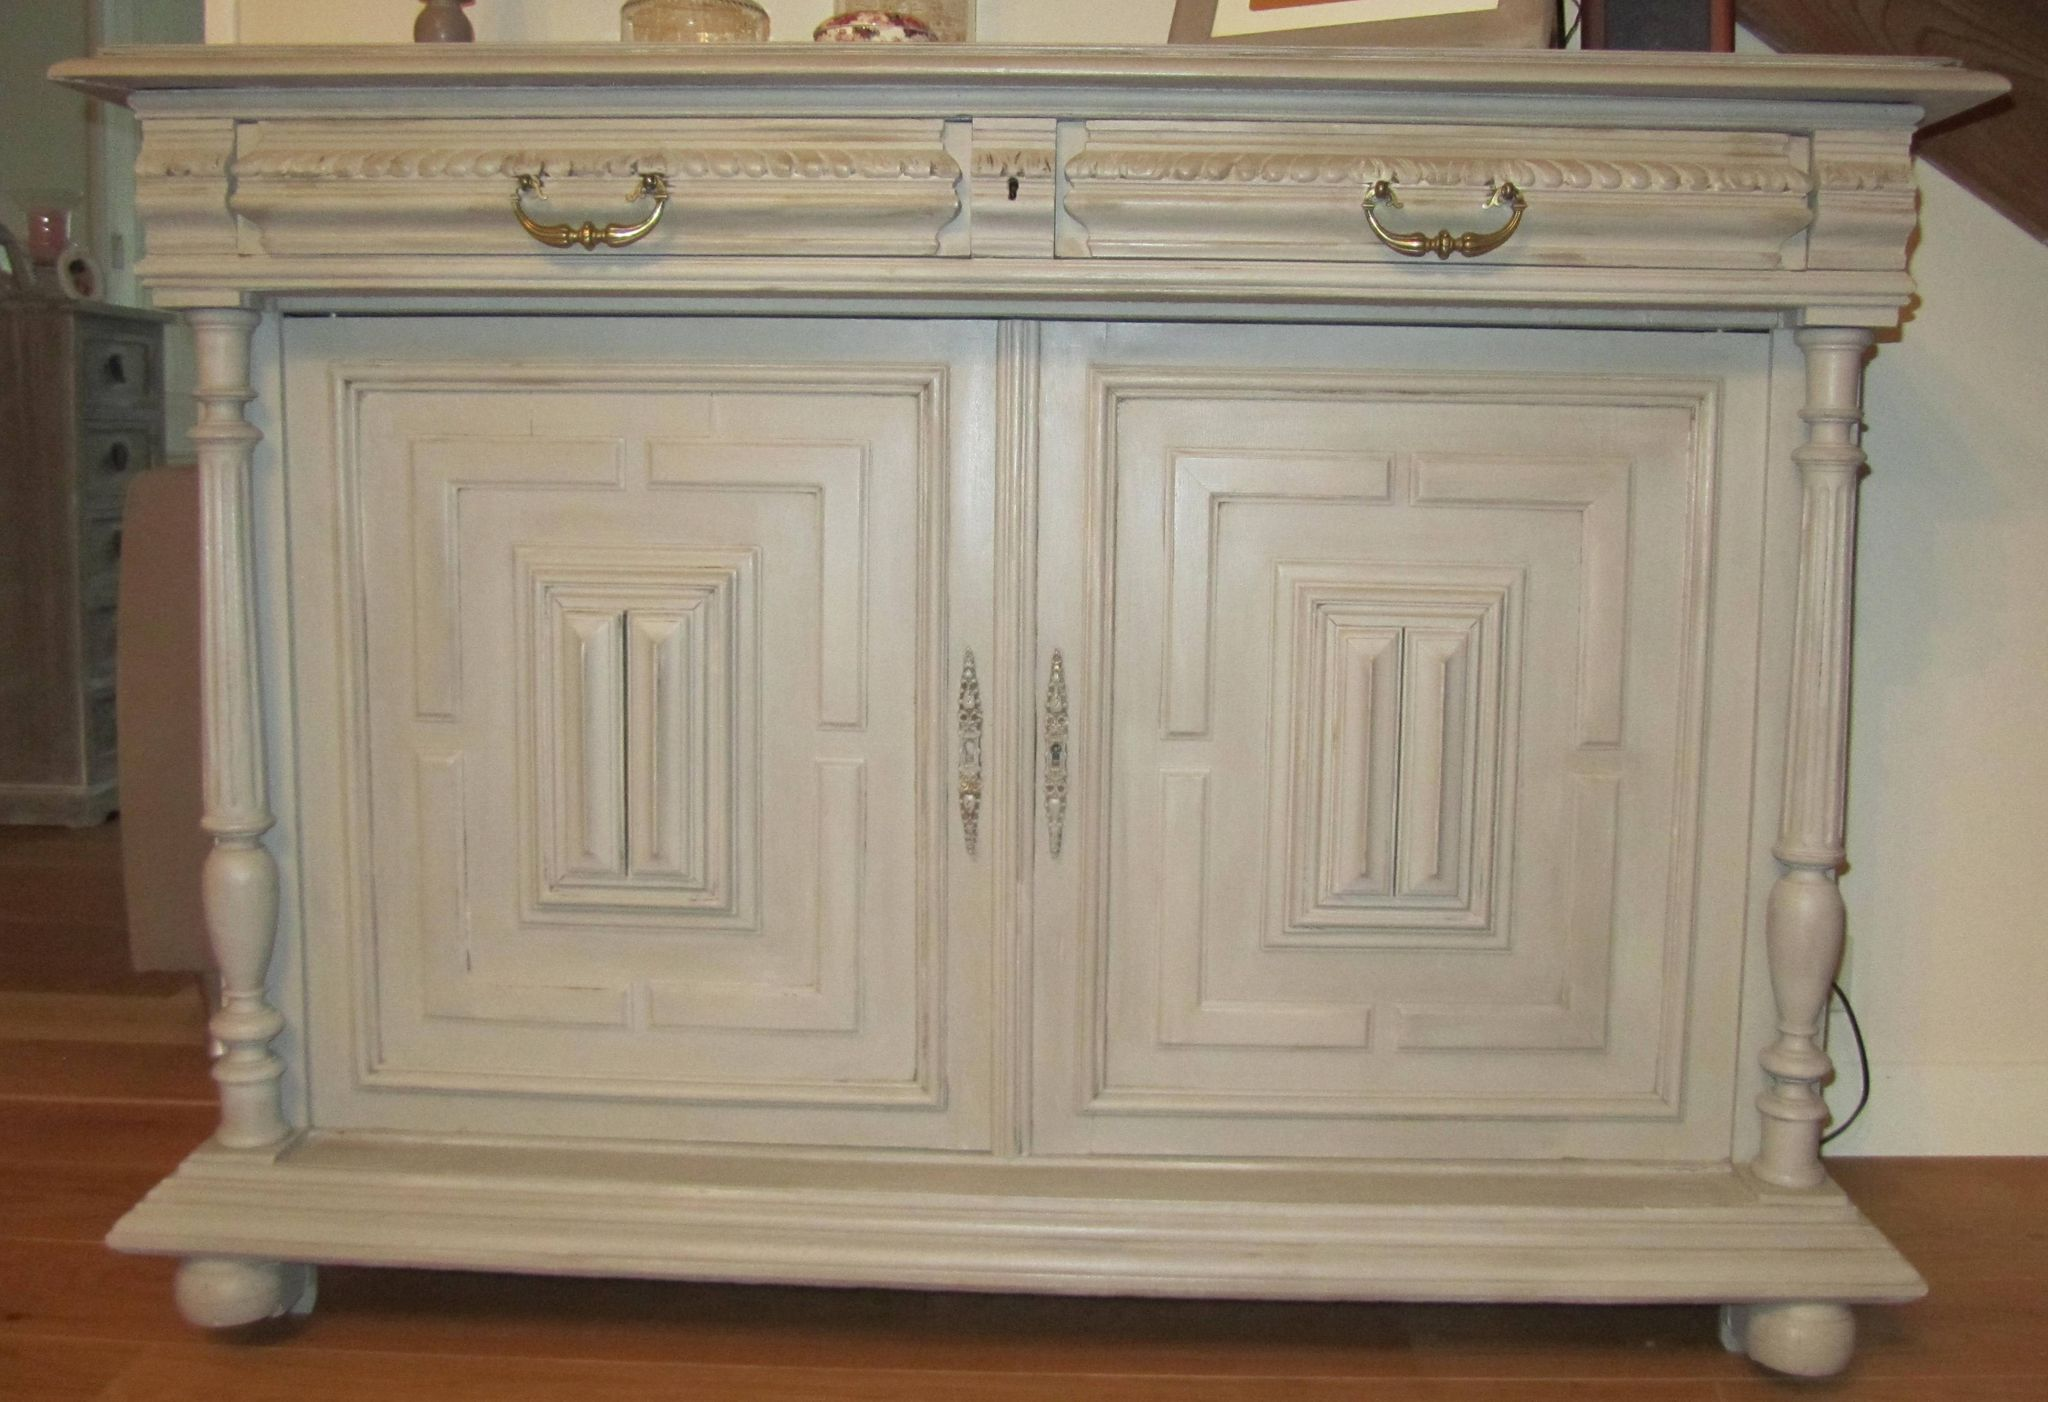 Patine taupe cire sur buffet bas 2 portes photo de deco for Patine sur meuble ancien